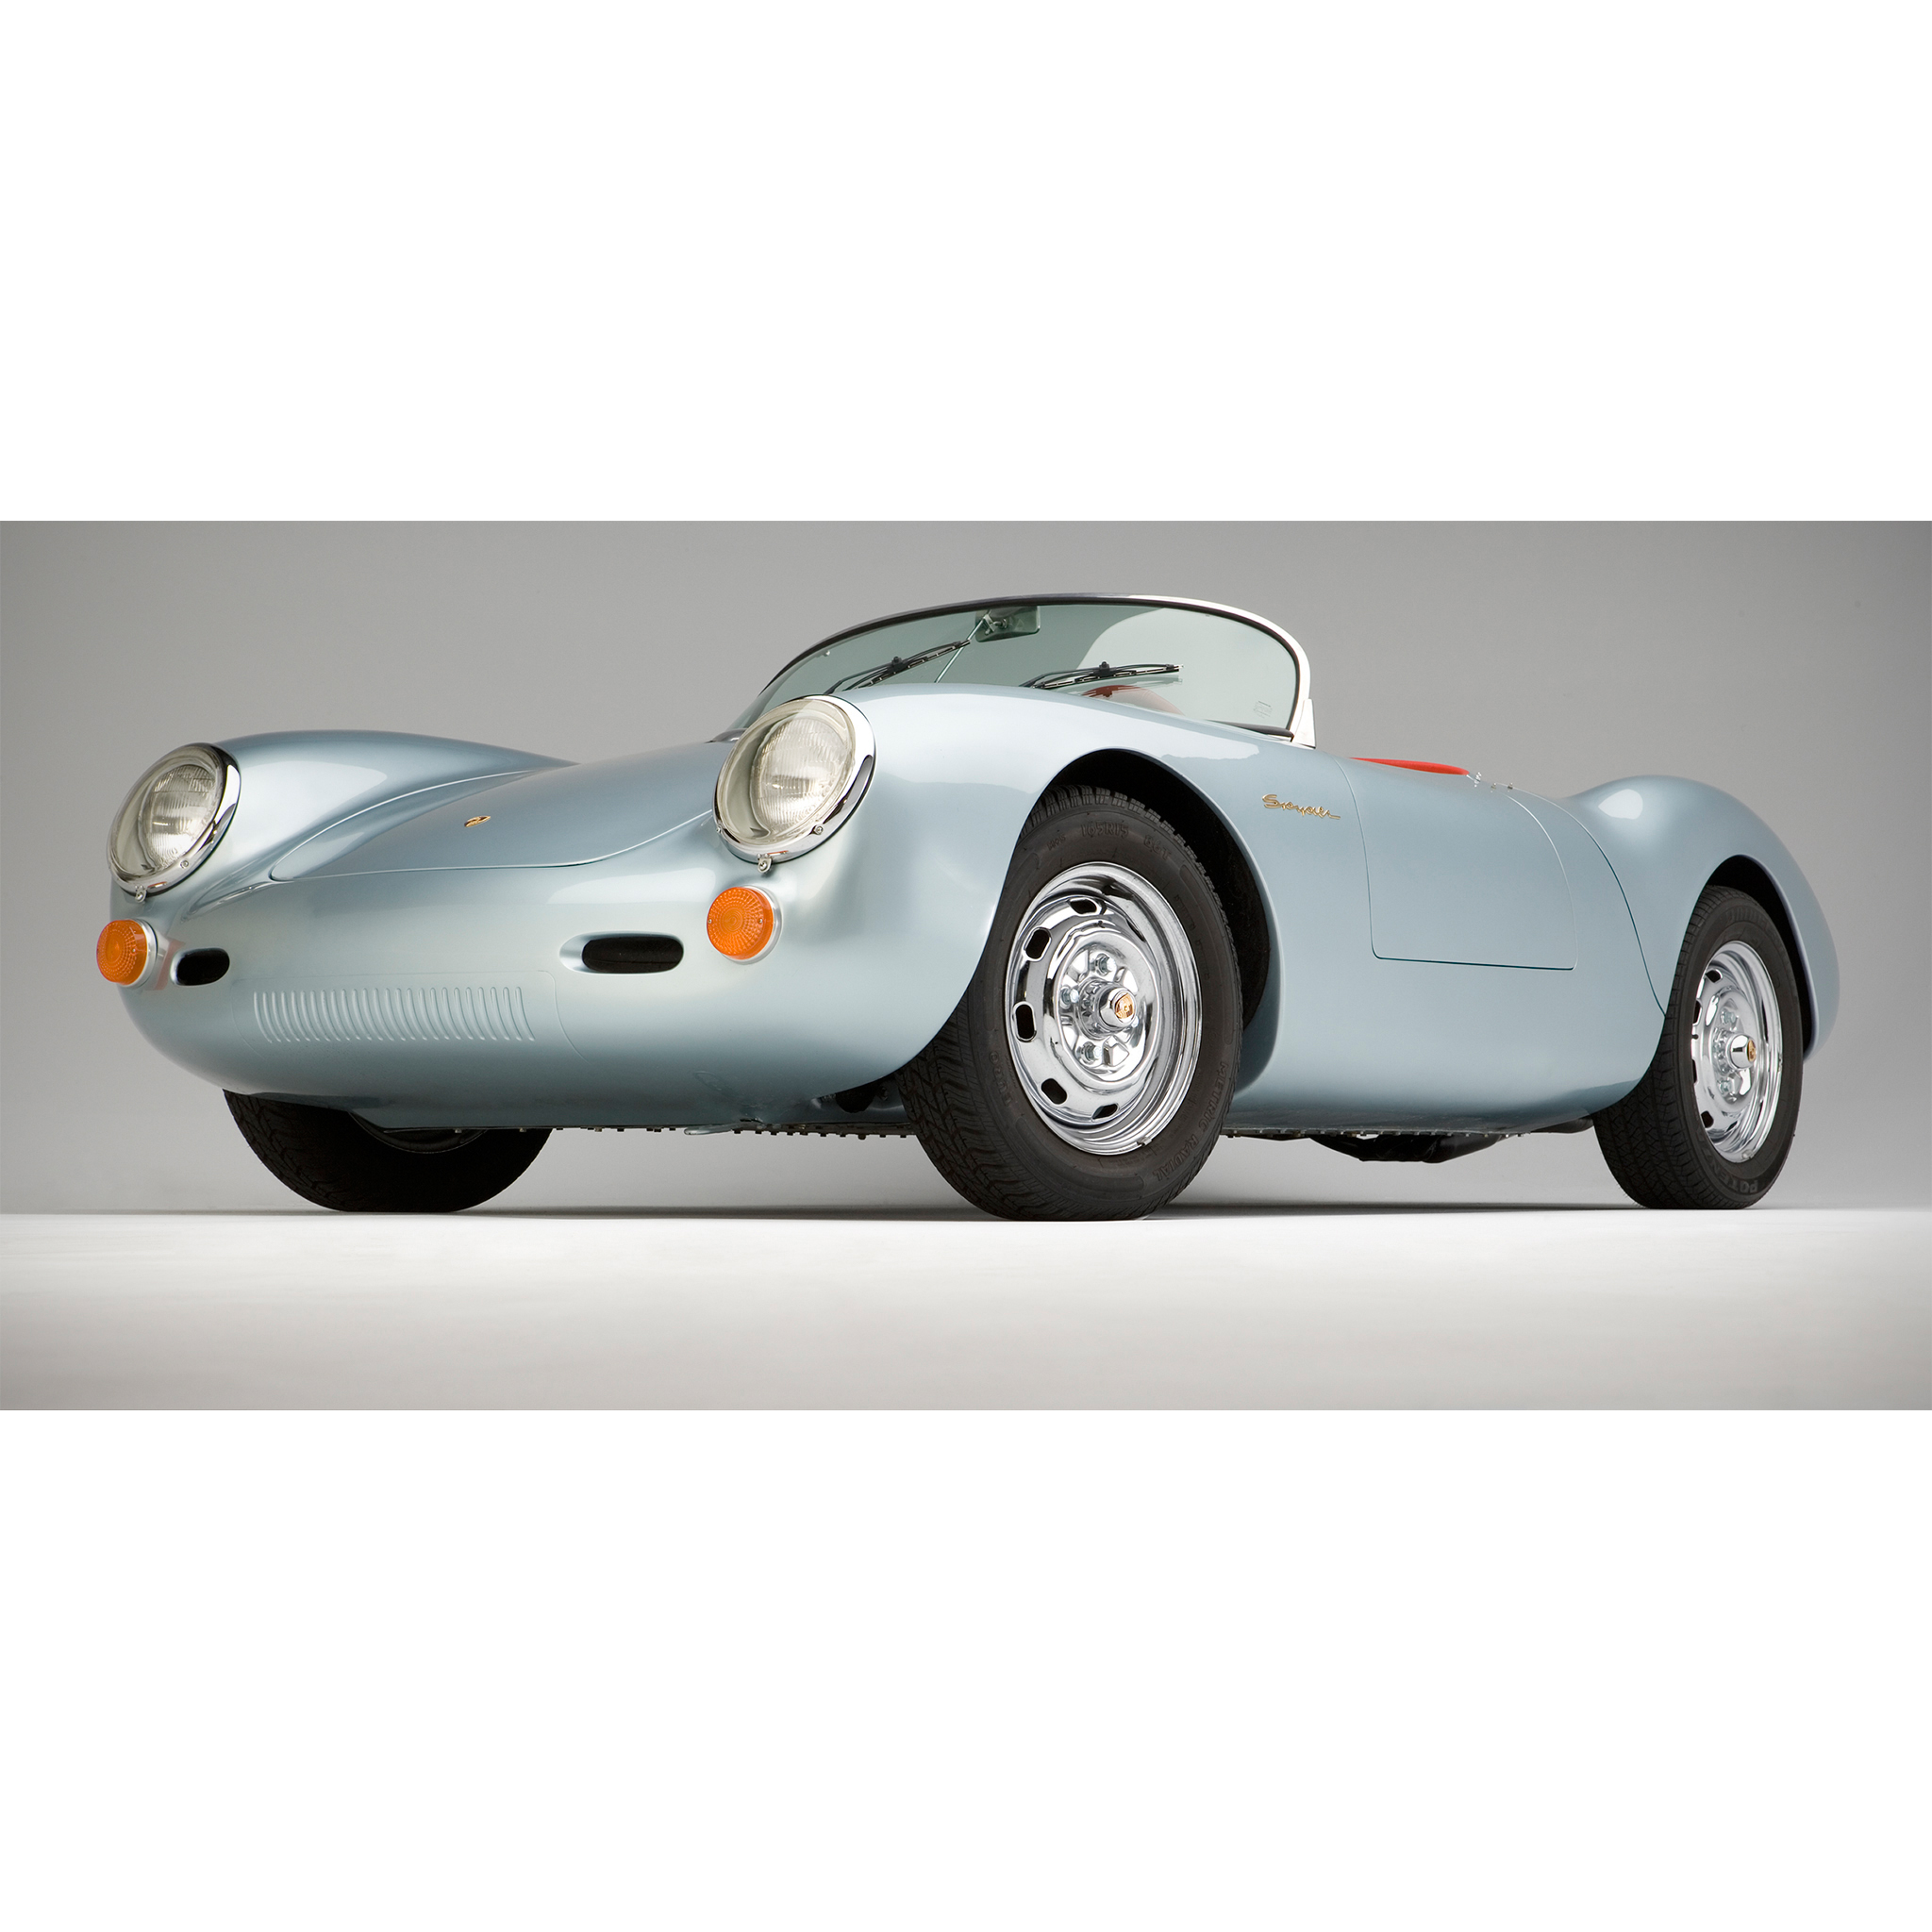 Photograph of a Porsche 550 Spyder by Craig Anderson Photography shot in studio